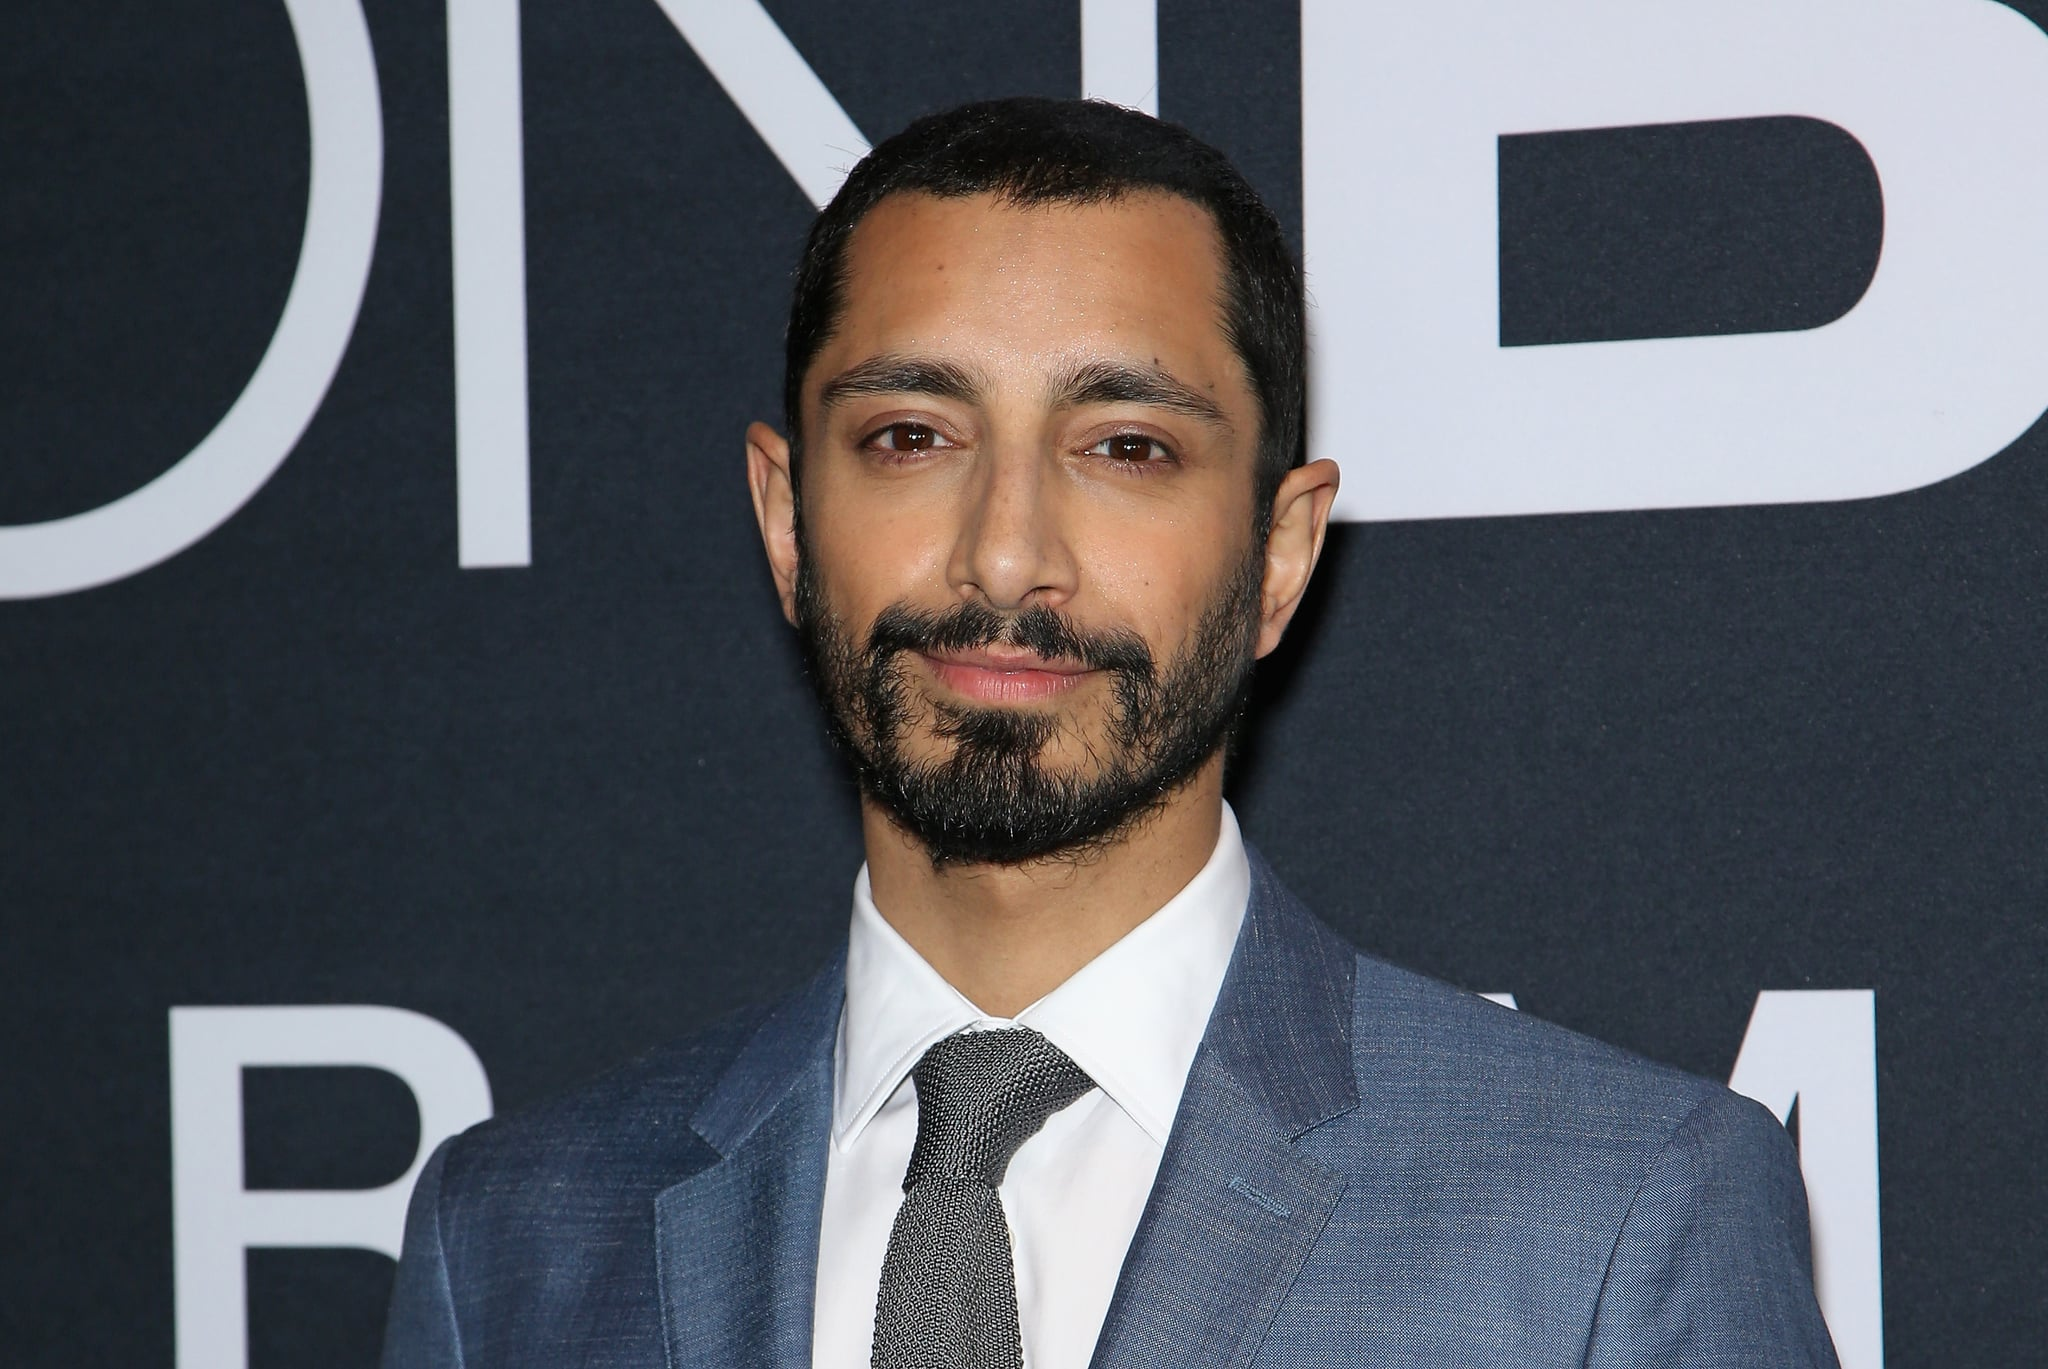 riz ahmed s essay on being muslim american news riz ahmed s essay on being muslim american